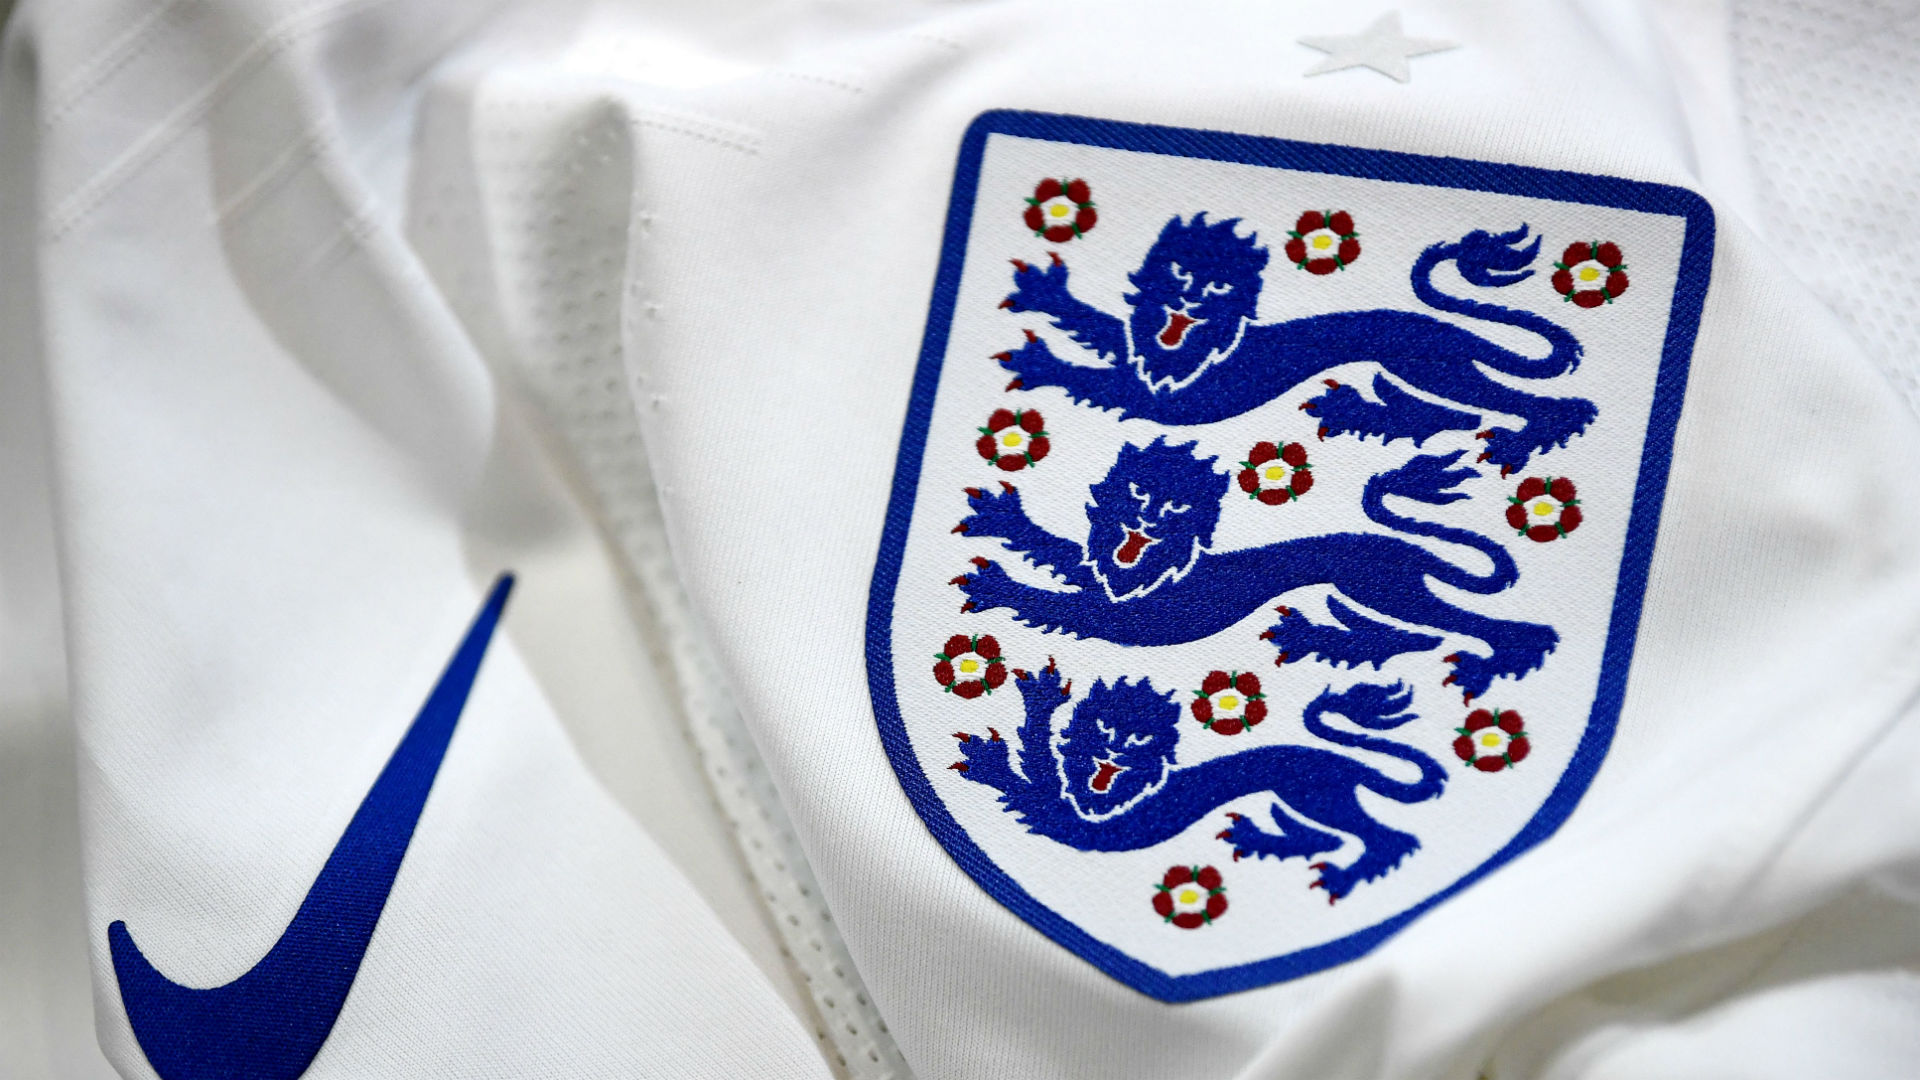 Hatters boss backs Three Lions to win the World Cup